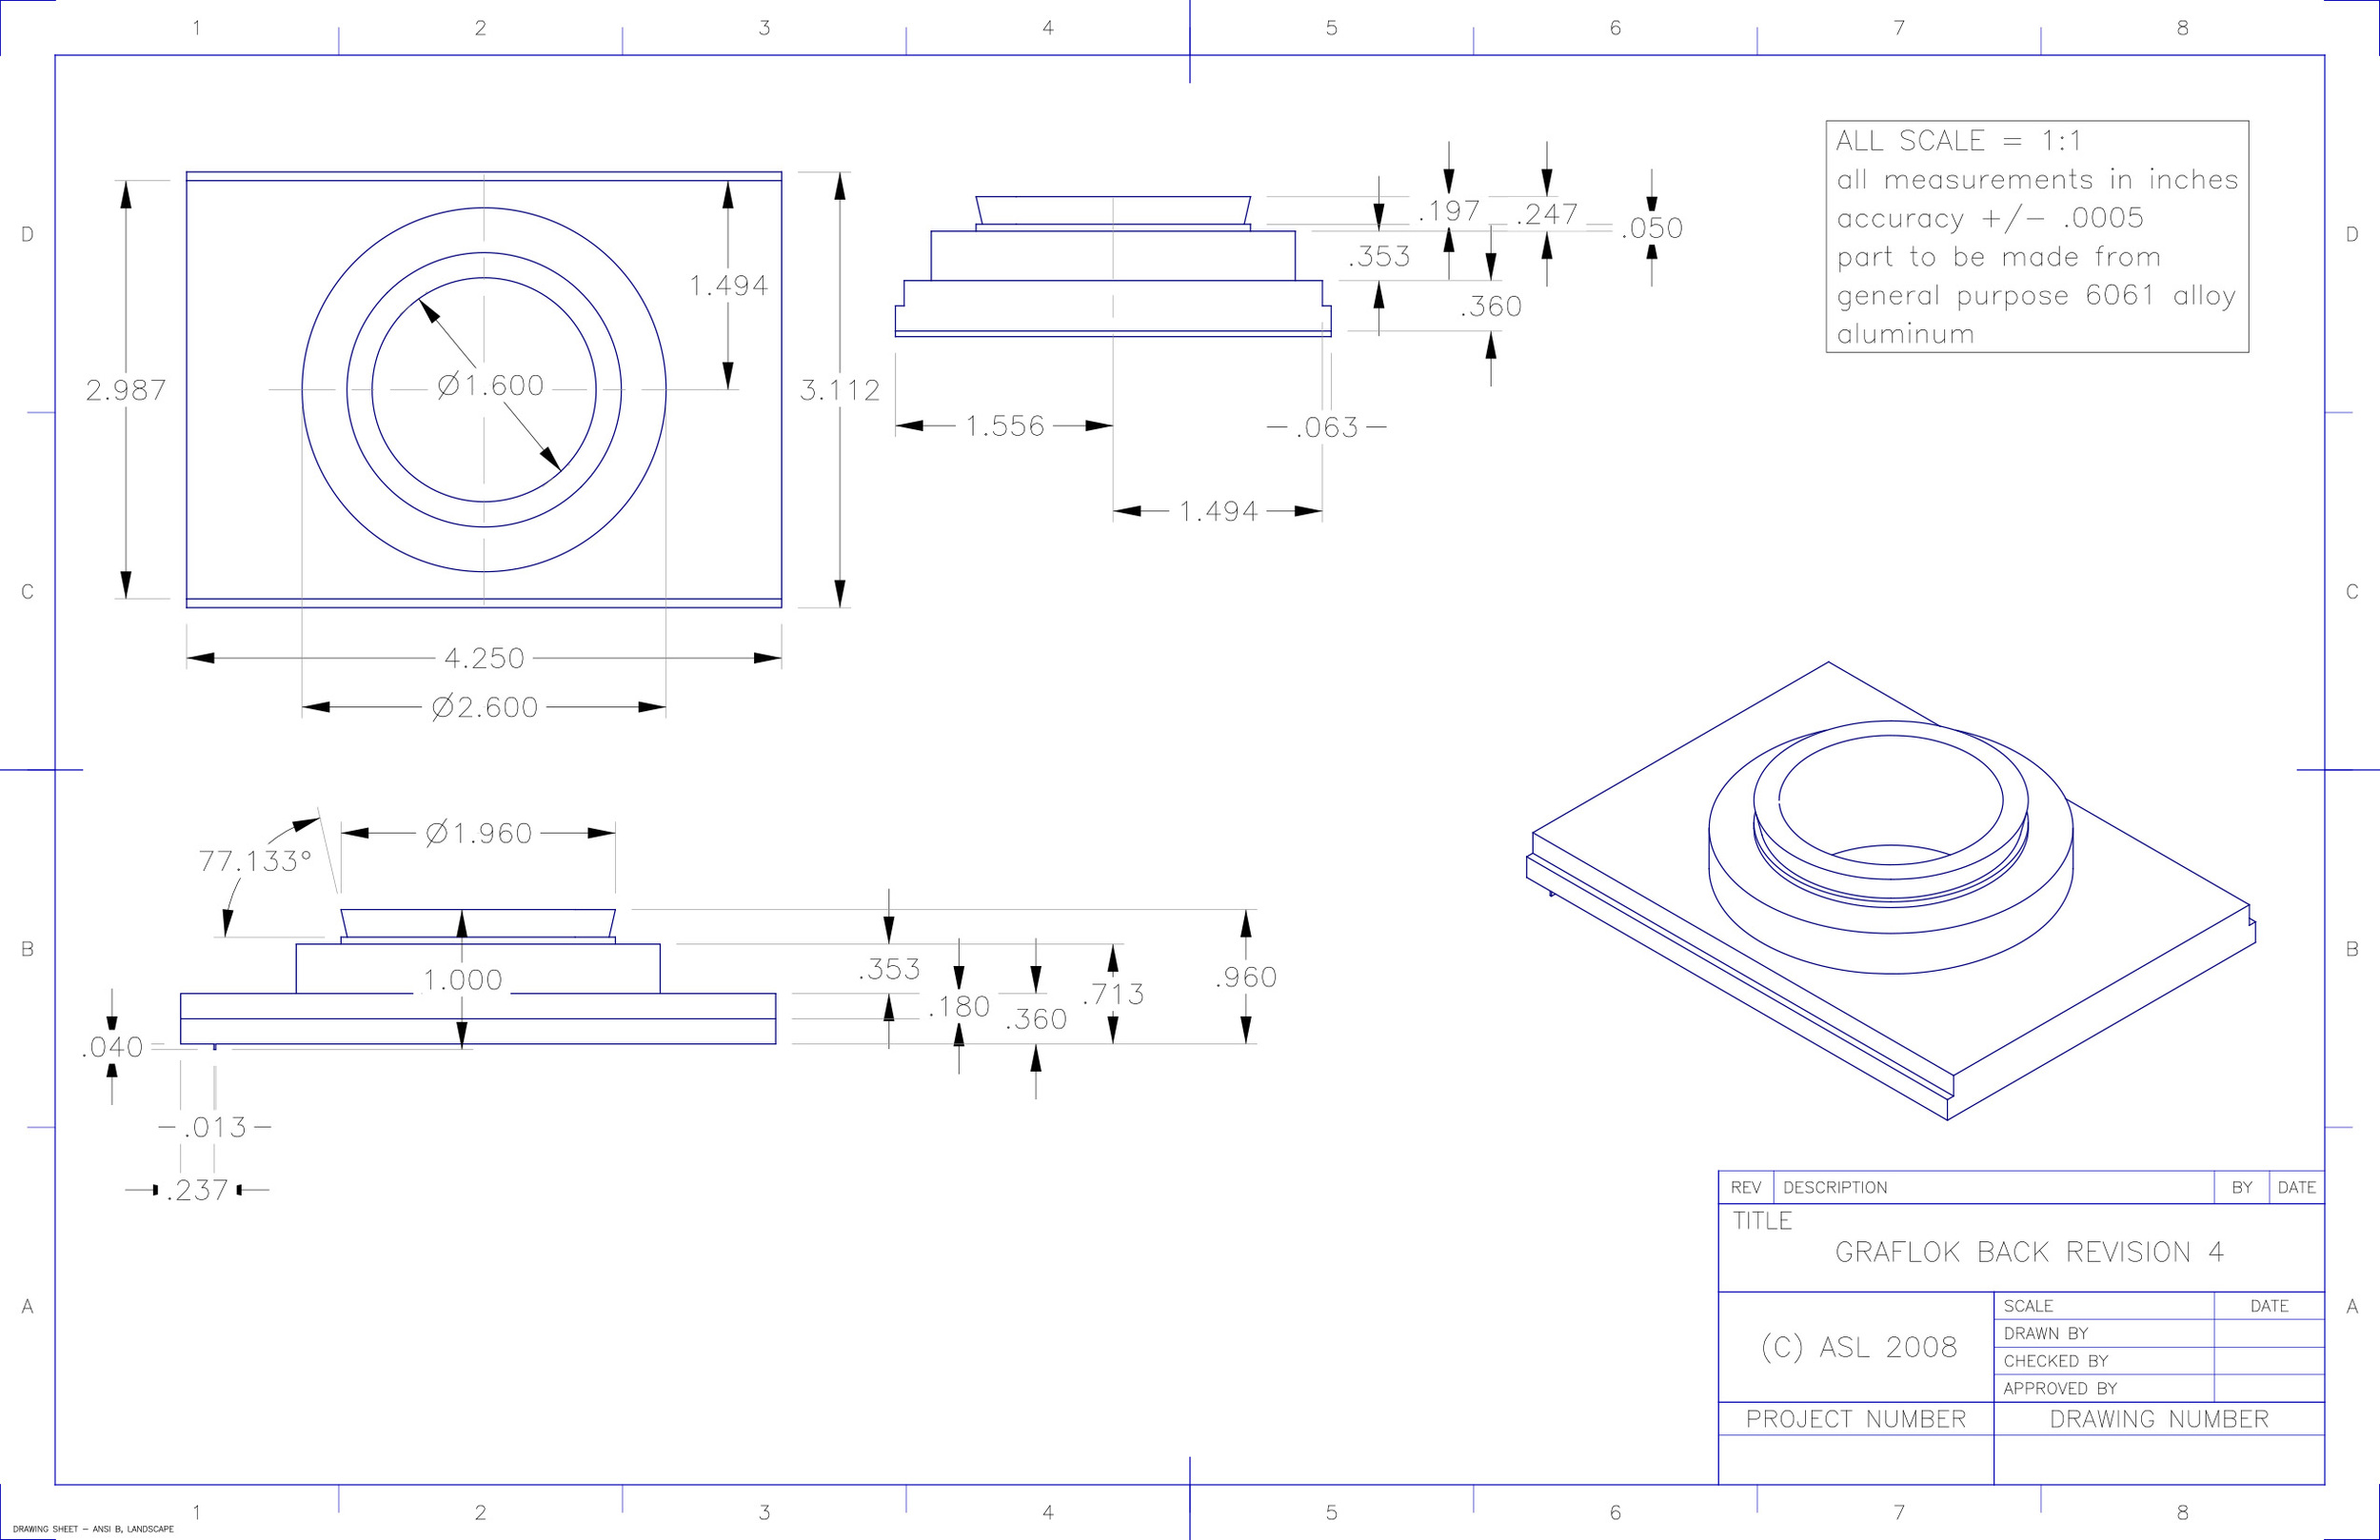 The design drawings and specifications of the fourth prototype back. It is seen being machined below.